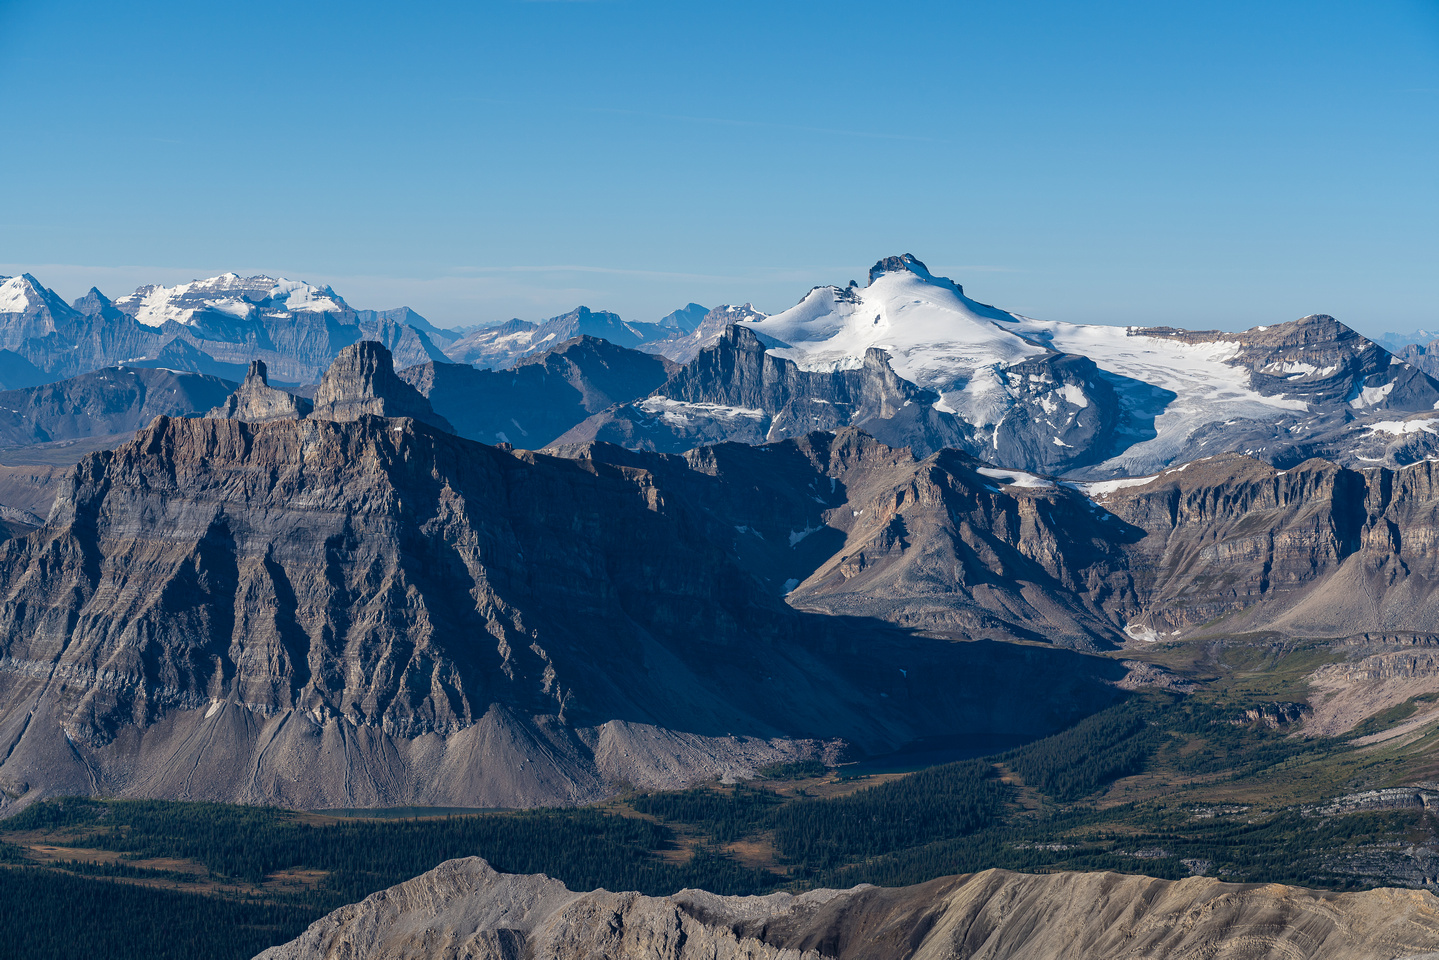 Minnow Peak at fg left with Mount Hector at right.